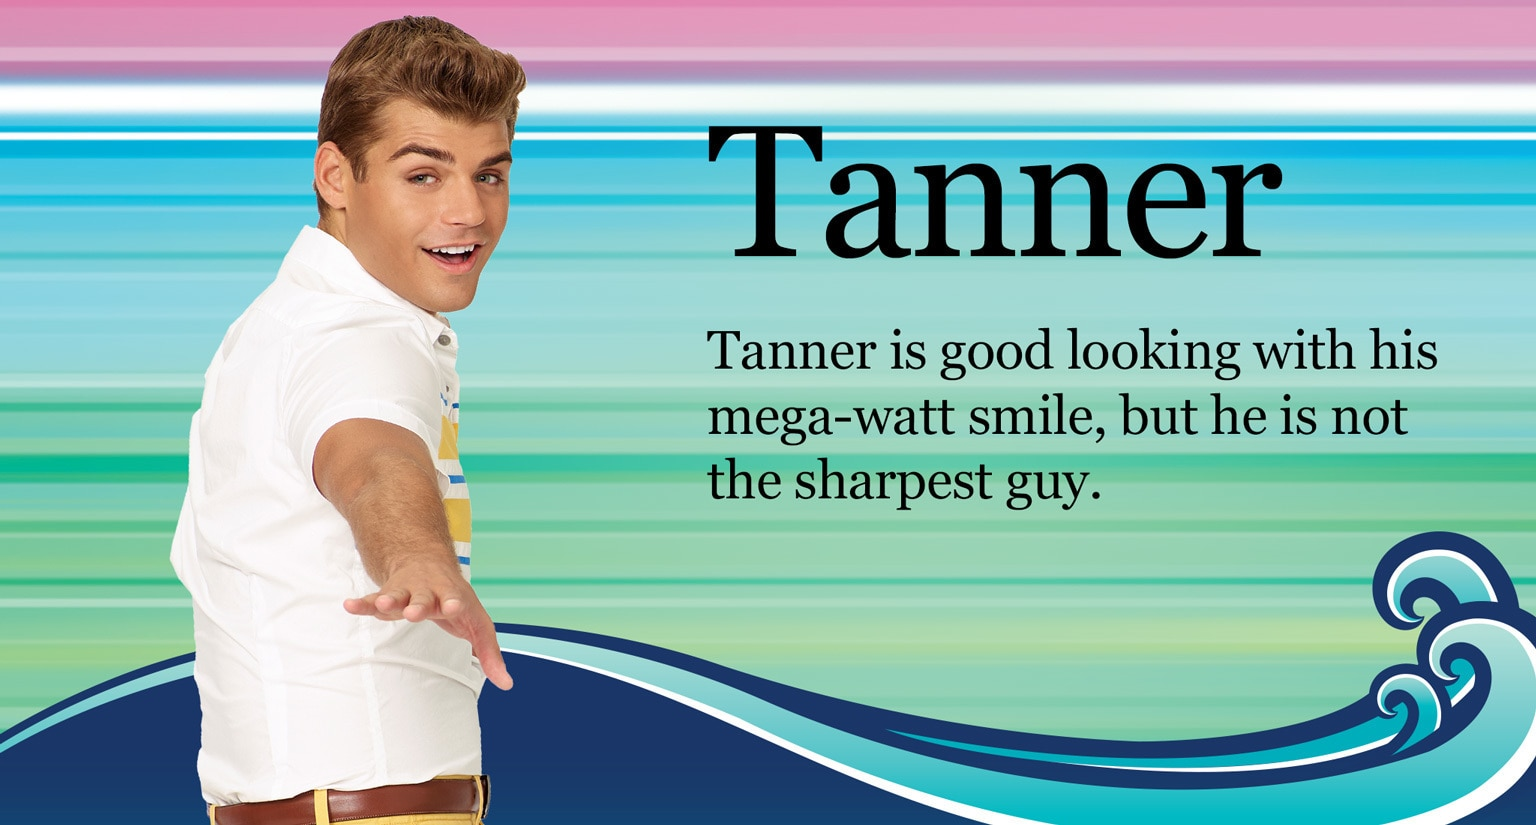 Teen Beach 2 - Show Home - Tanner Character Hero - ID